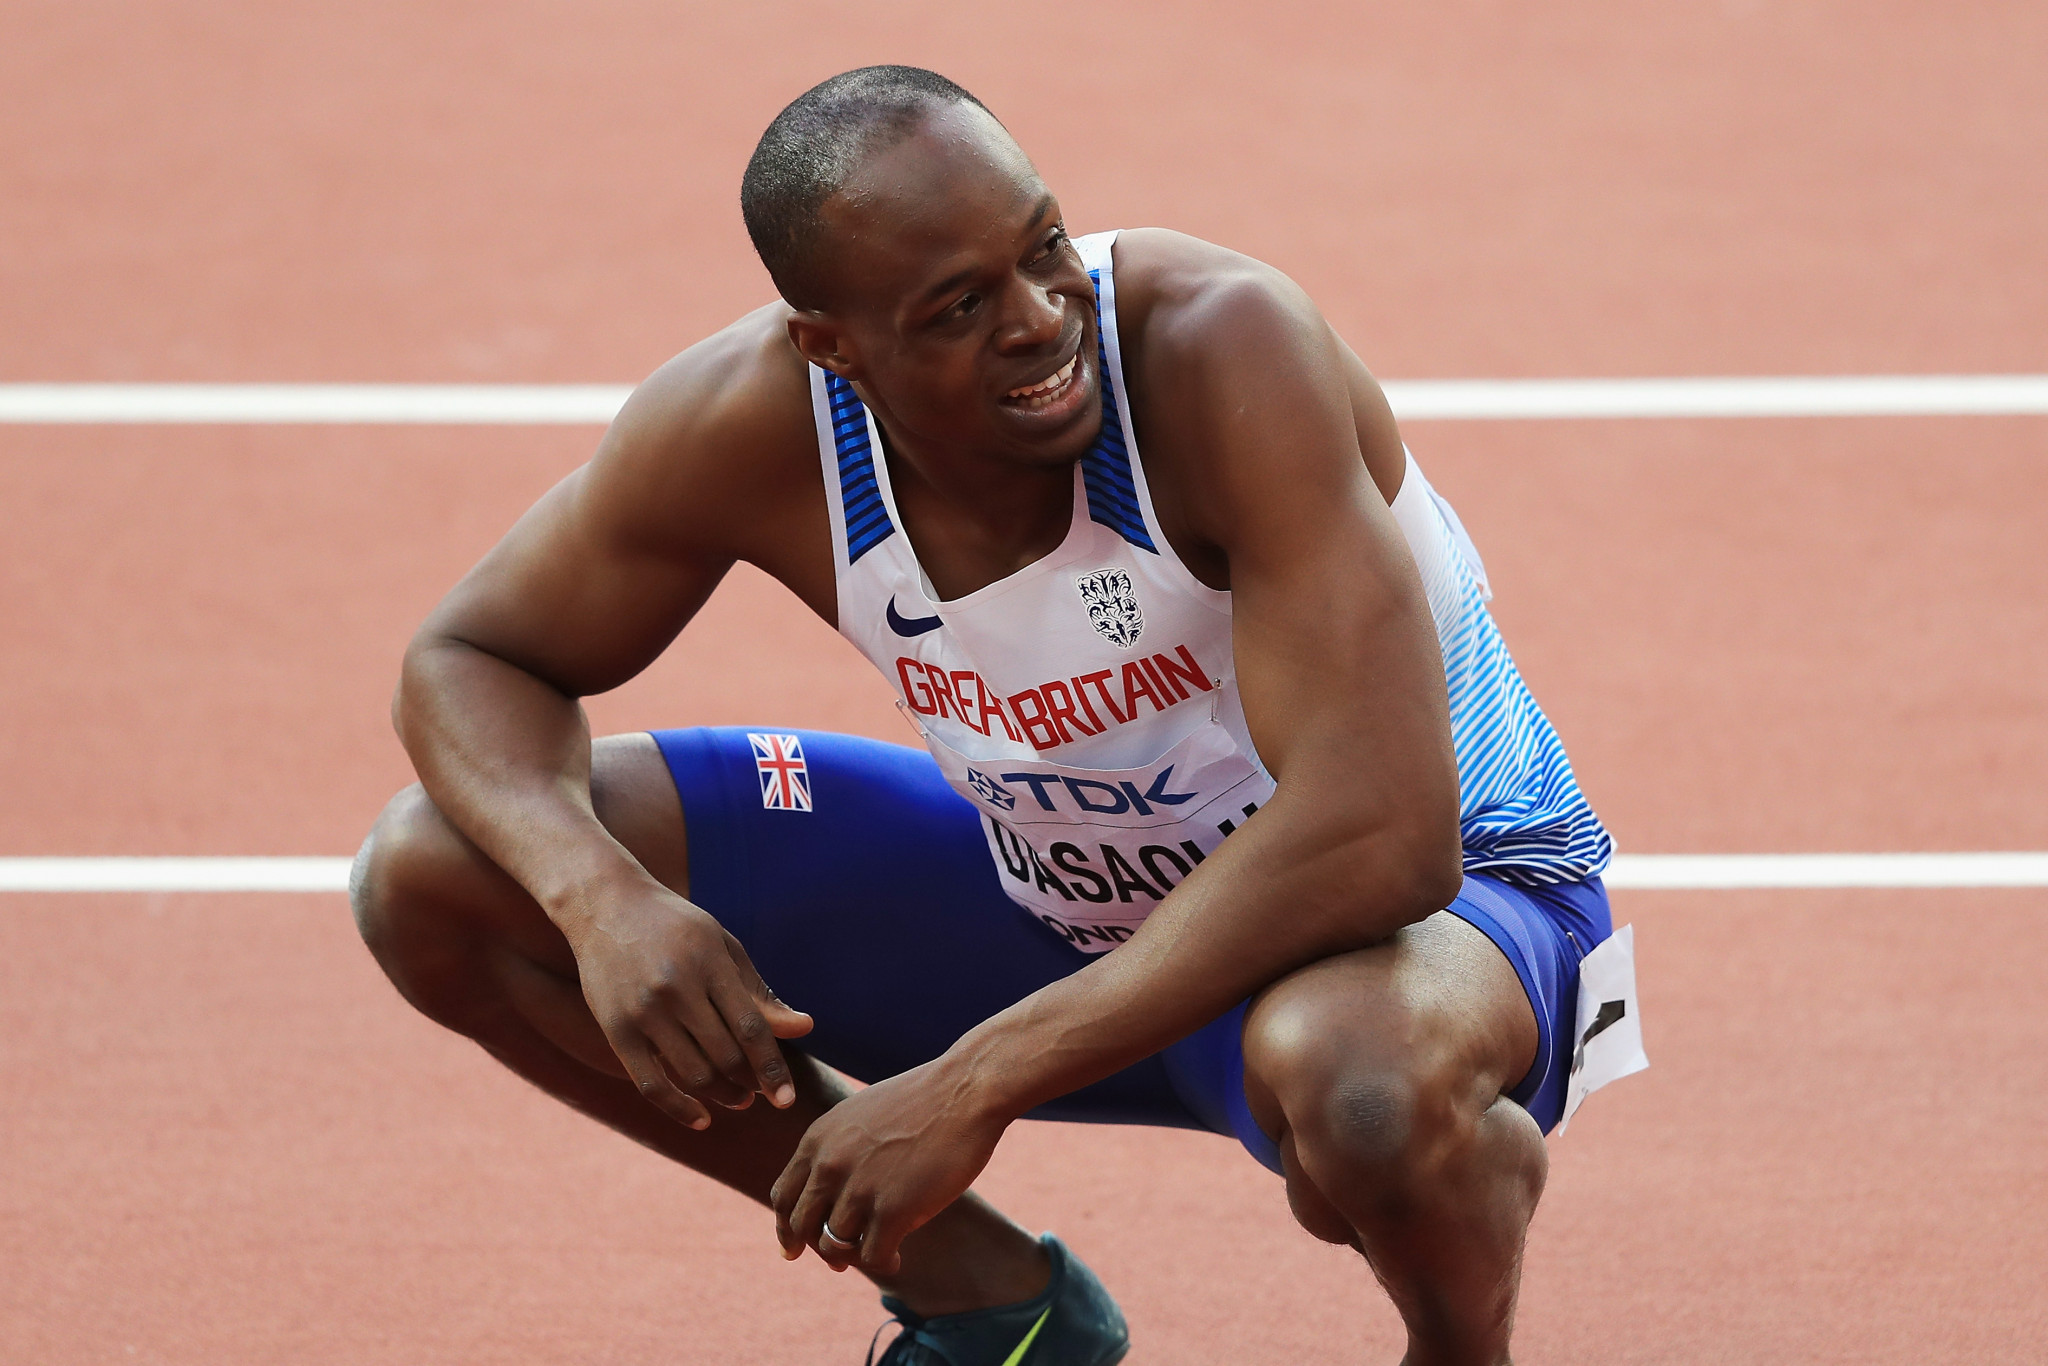 James Dasaolu is among withdrawals from the England team ©Getty Images